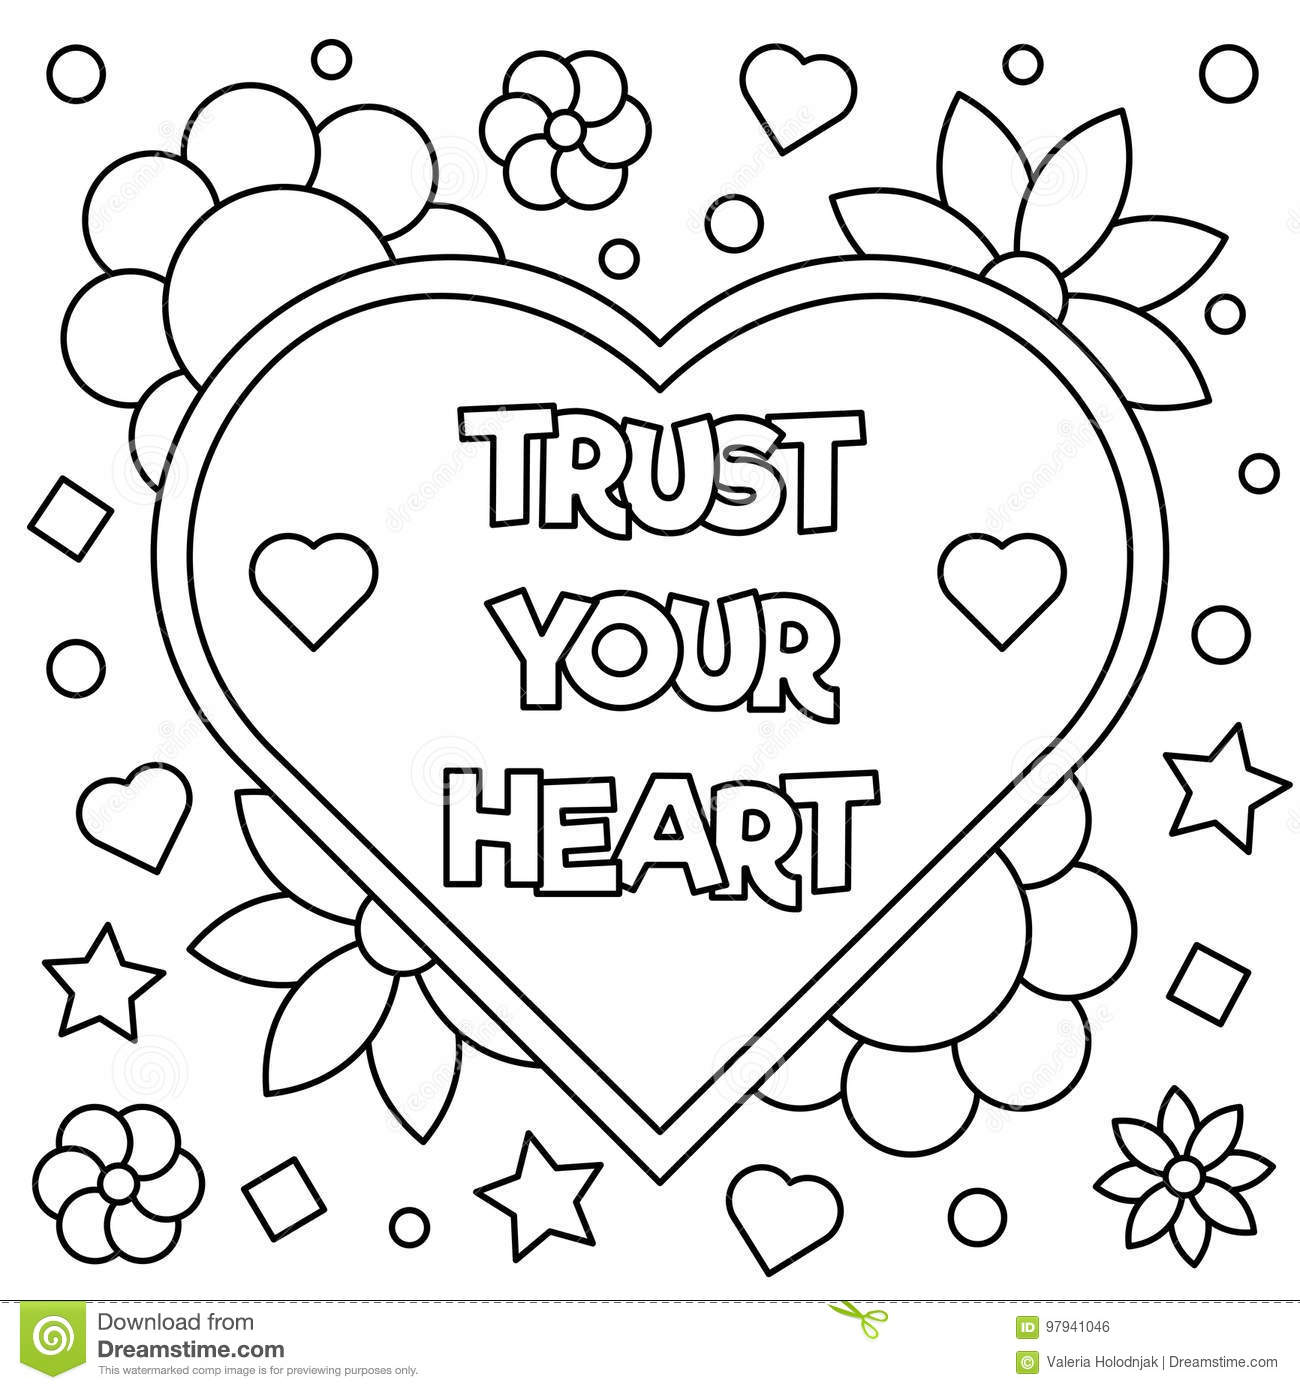 Trust Your Heart. Coloring Page. Vector Illustration. Stock ...